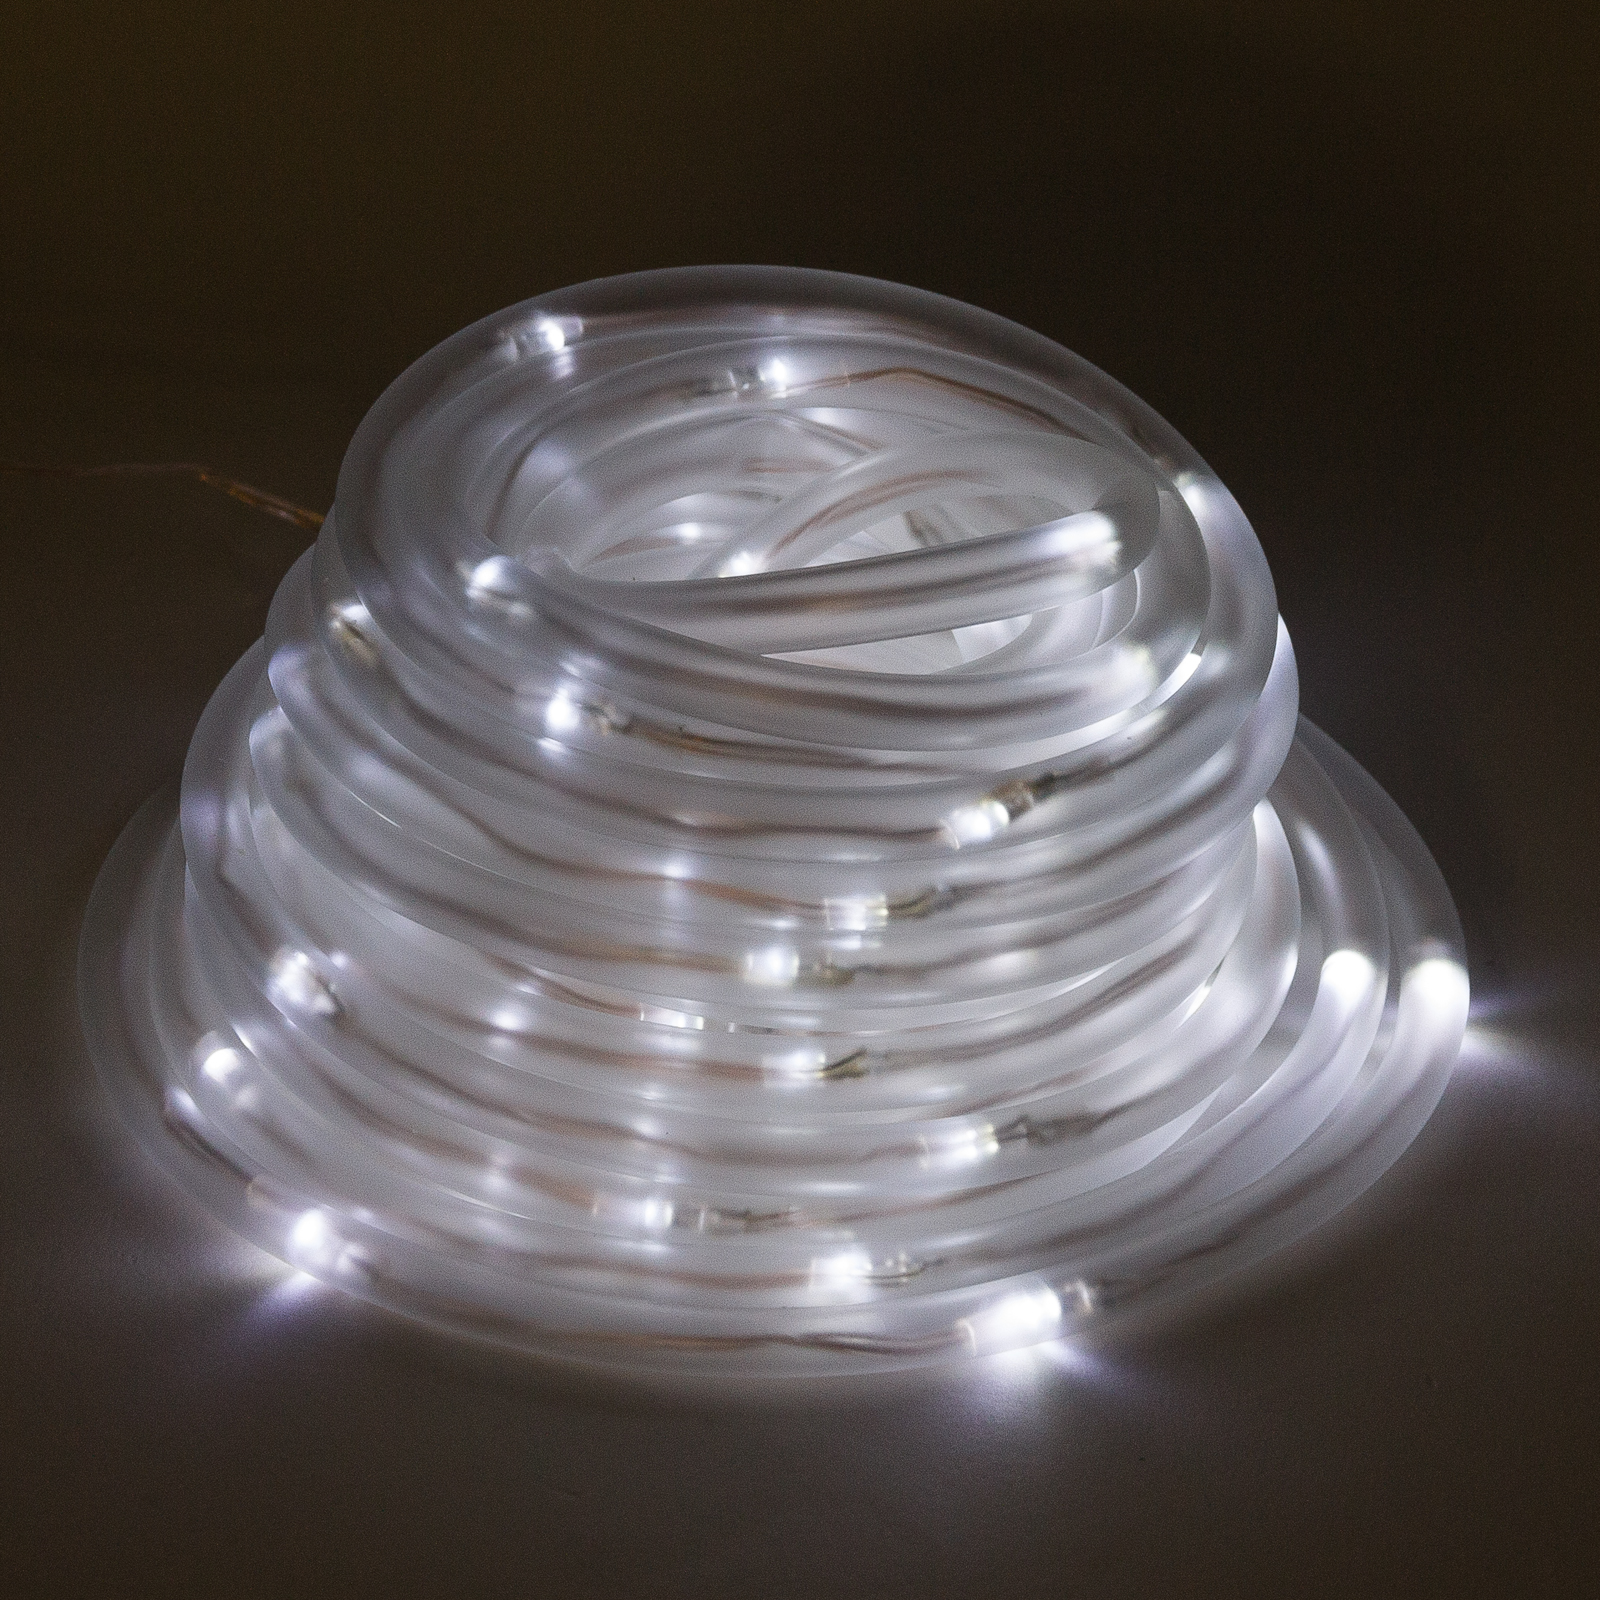 100 white led rope outdoor garden landscaping decorative light ebay